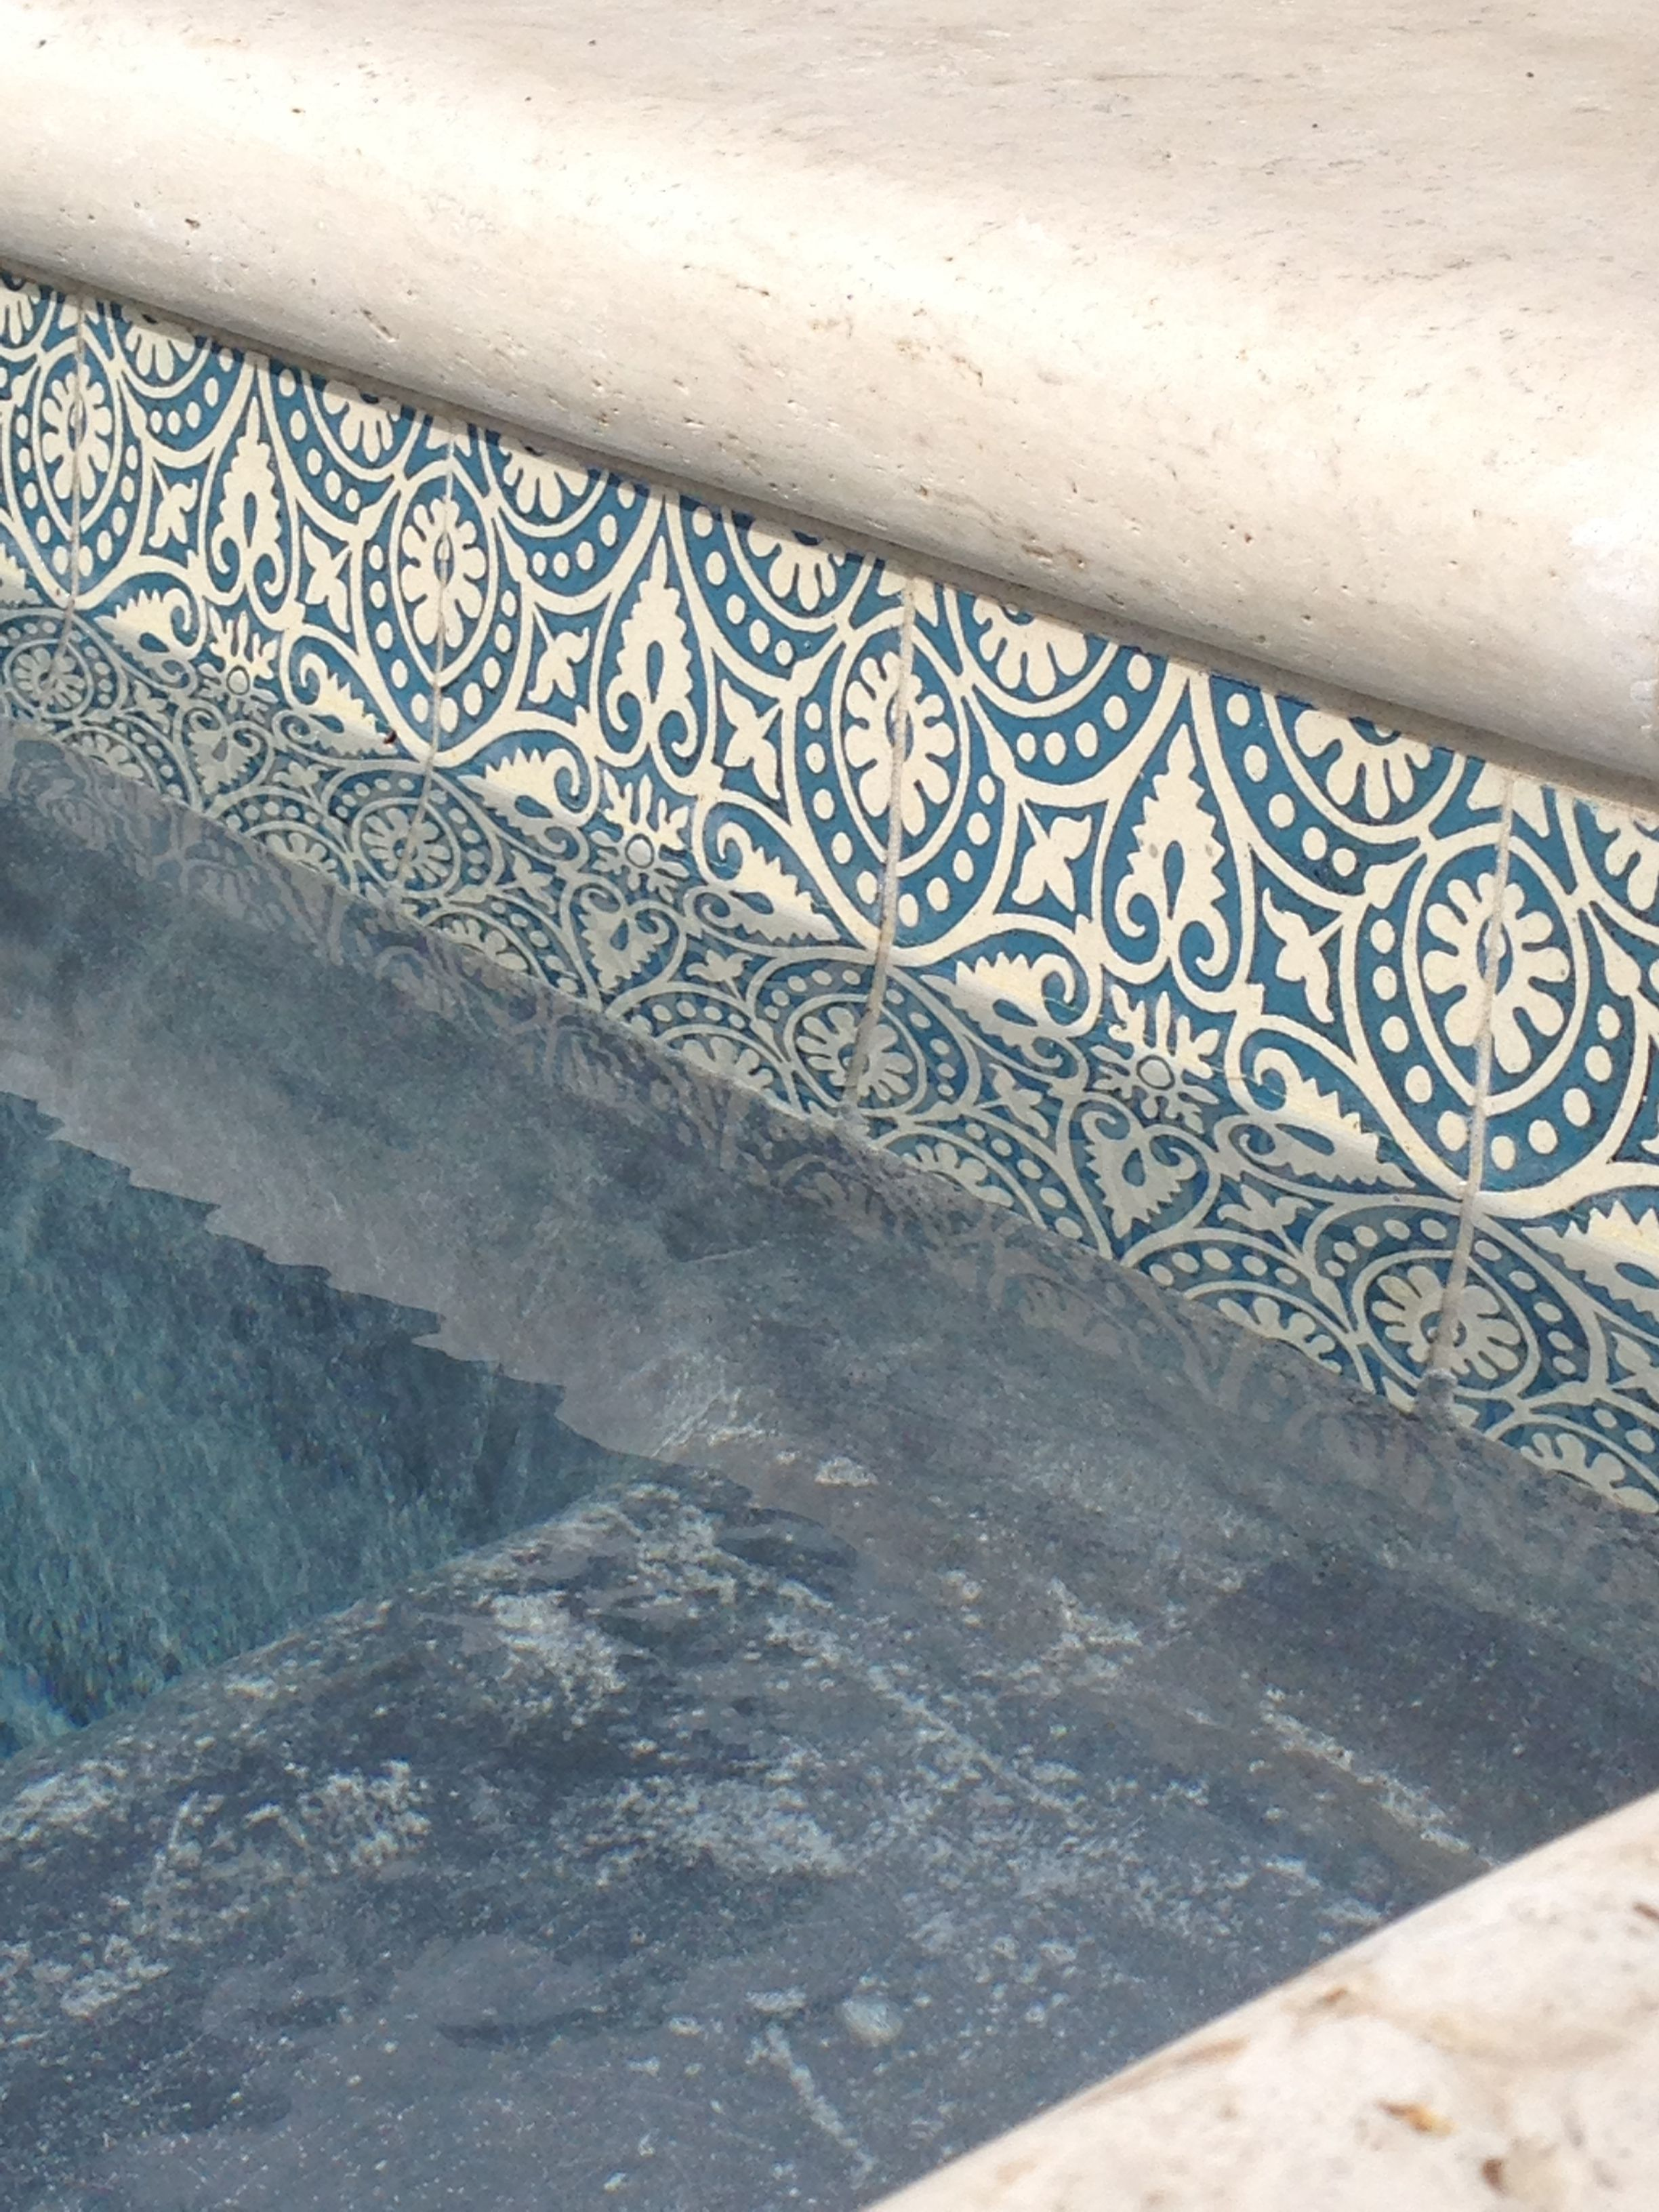 Decorative Pool Tile Custom Patterson Collection  Low Relief Beautiful For A Pool So Inspiration